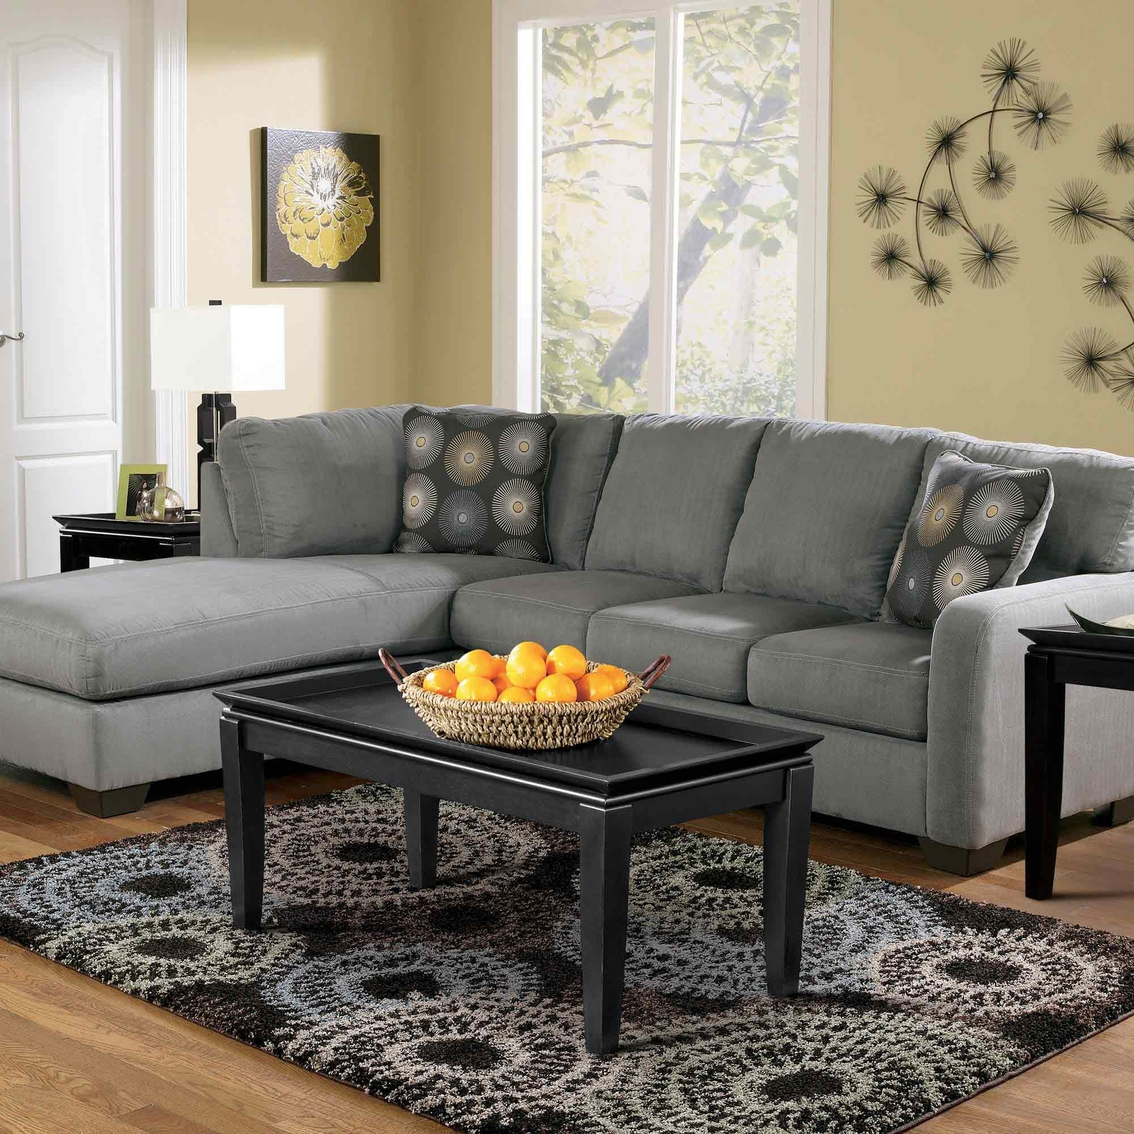 Signature design by ashley zella 2 pc sectional laf for Zella sectional sofa